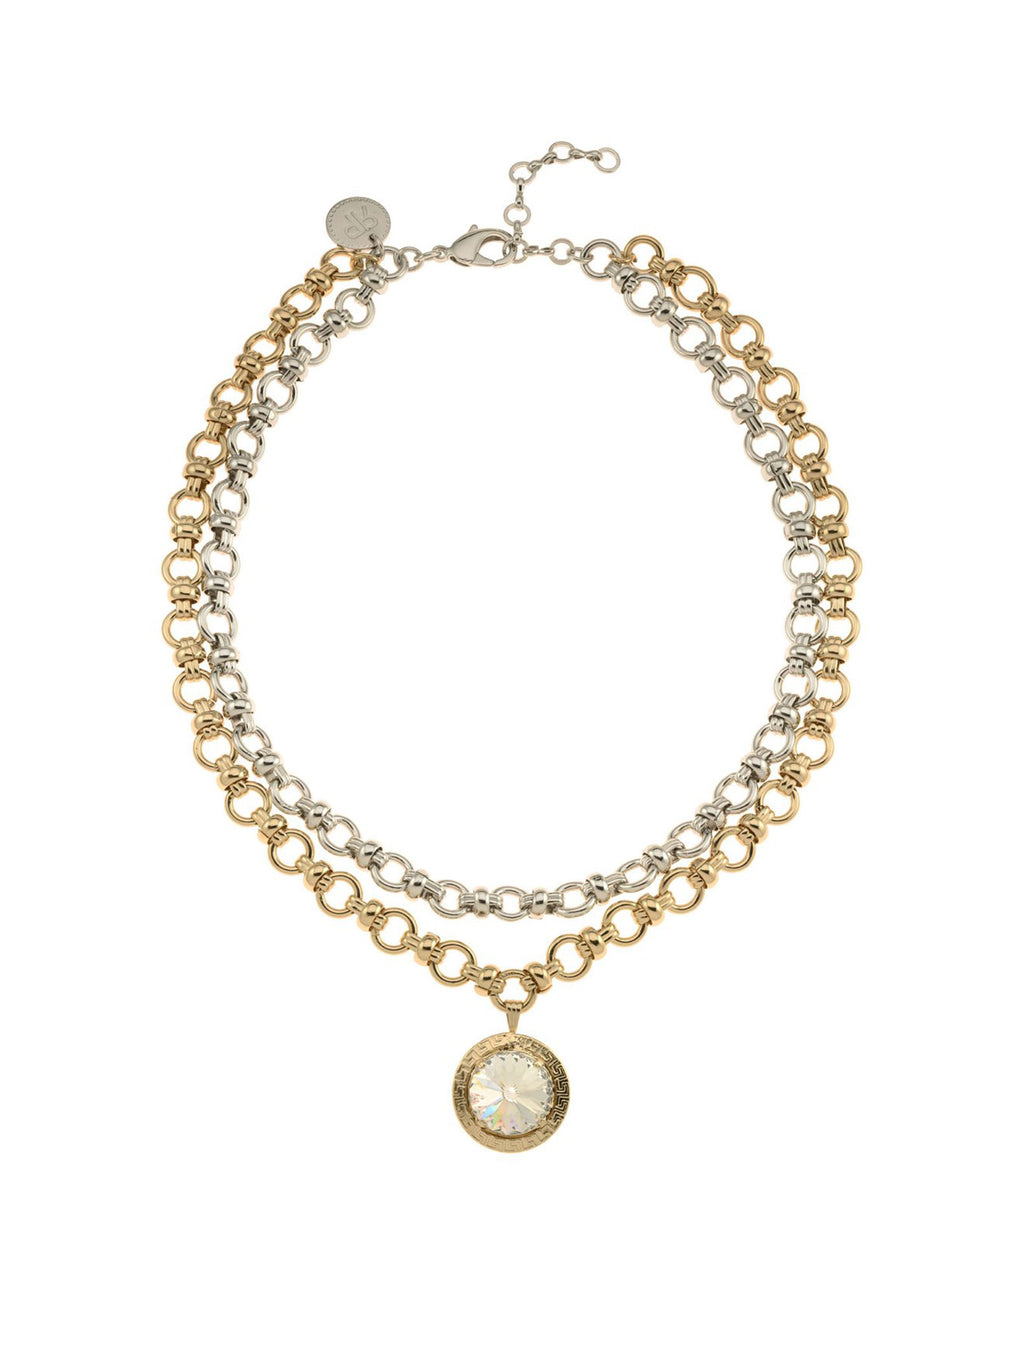 Rebekah Price Cybil Necklace